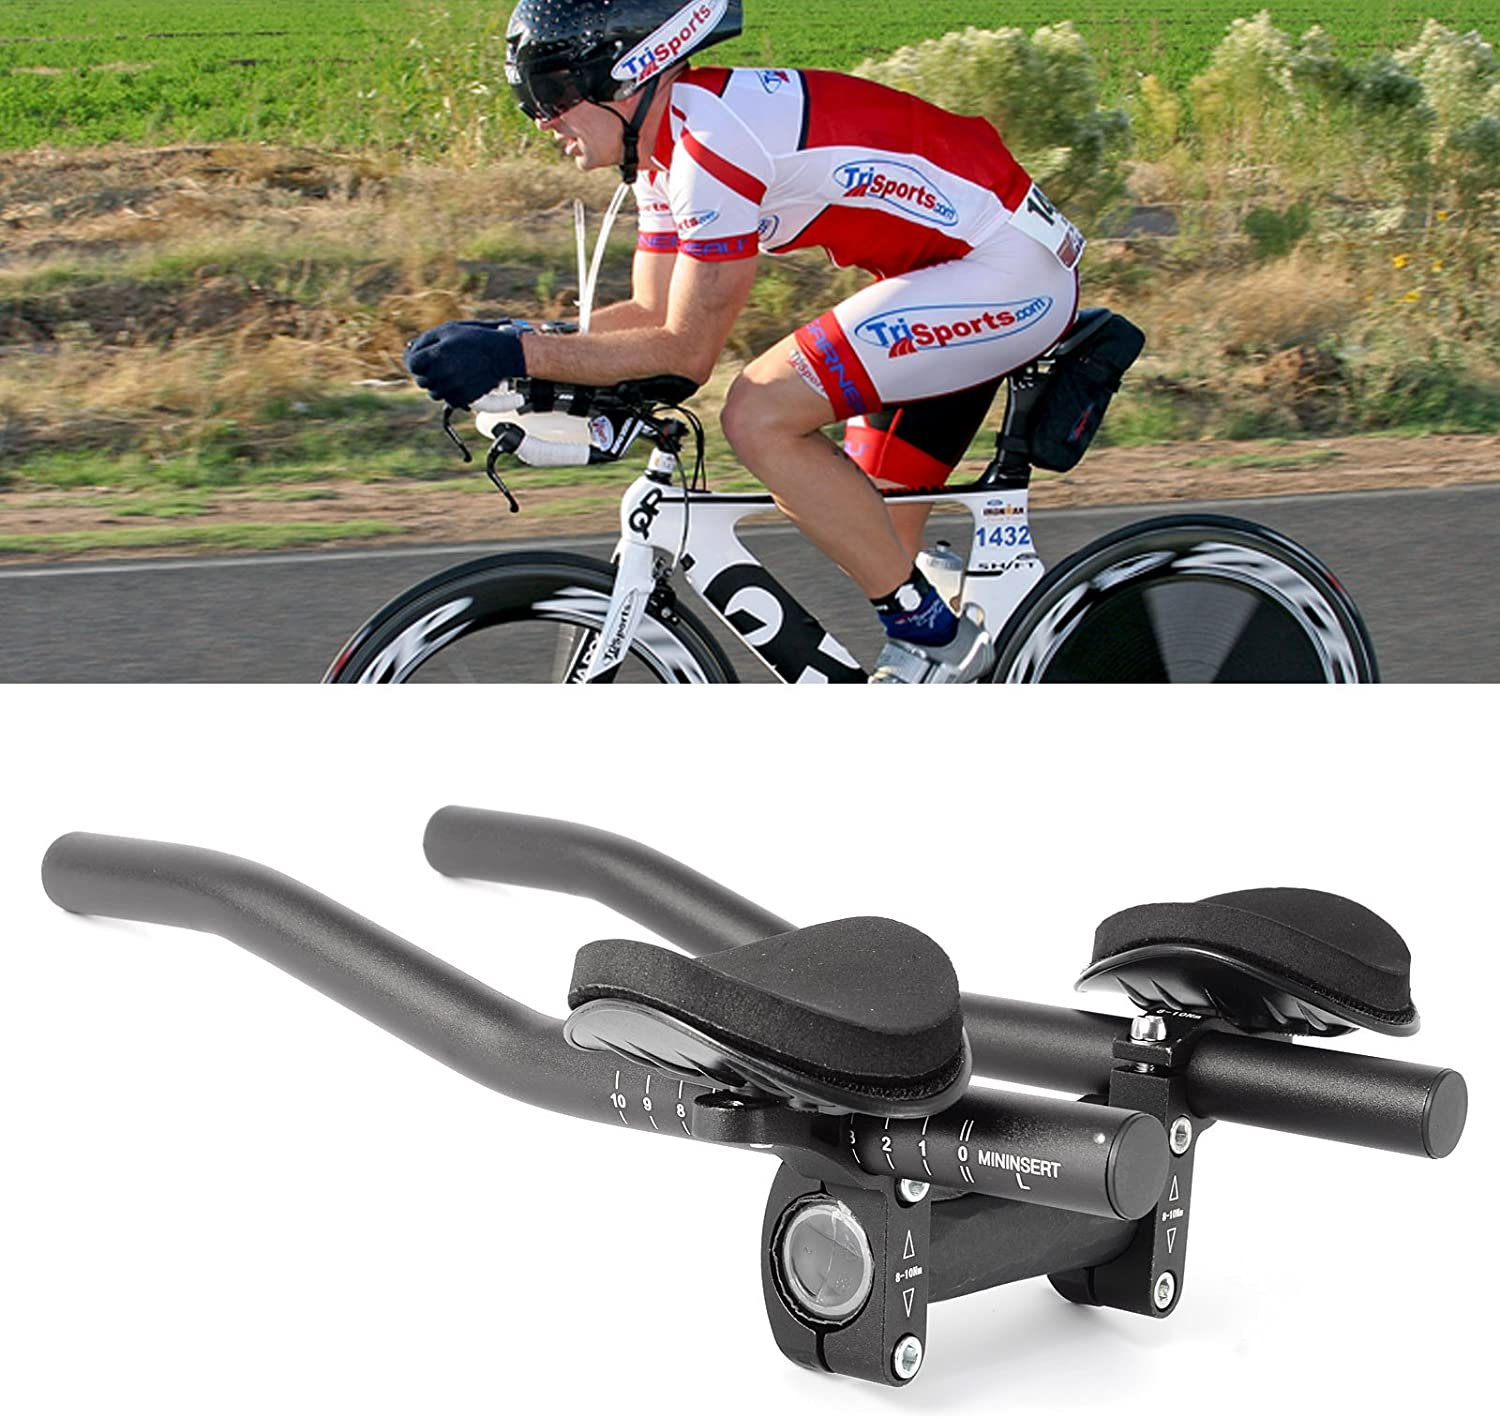 Bicycle rest Handlebar Aerobar Carbon Fiber For MTB Road Bike Racing 1 Pair